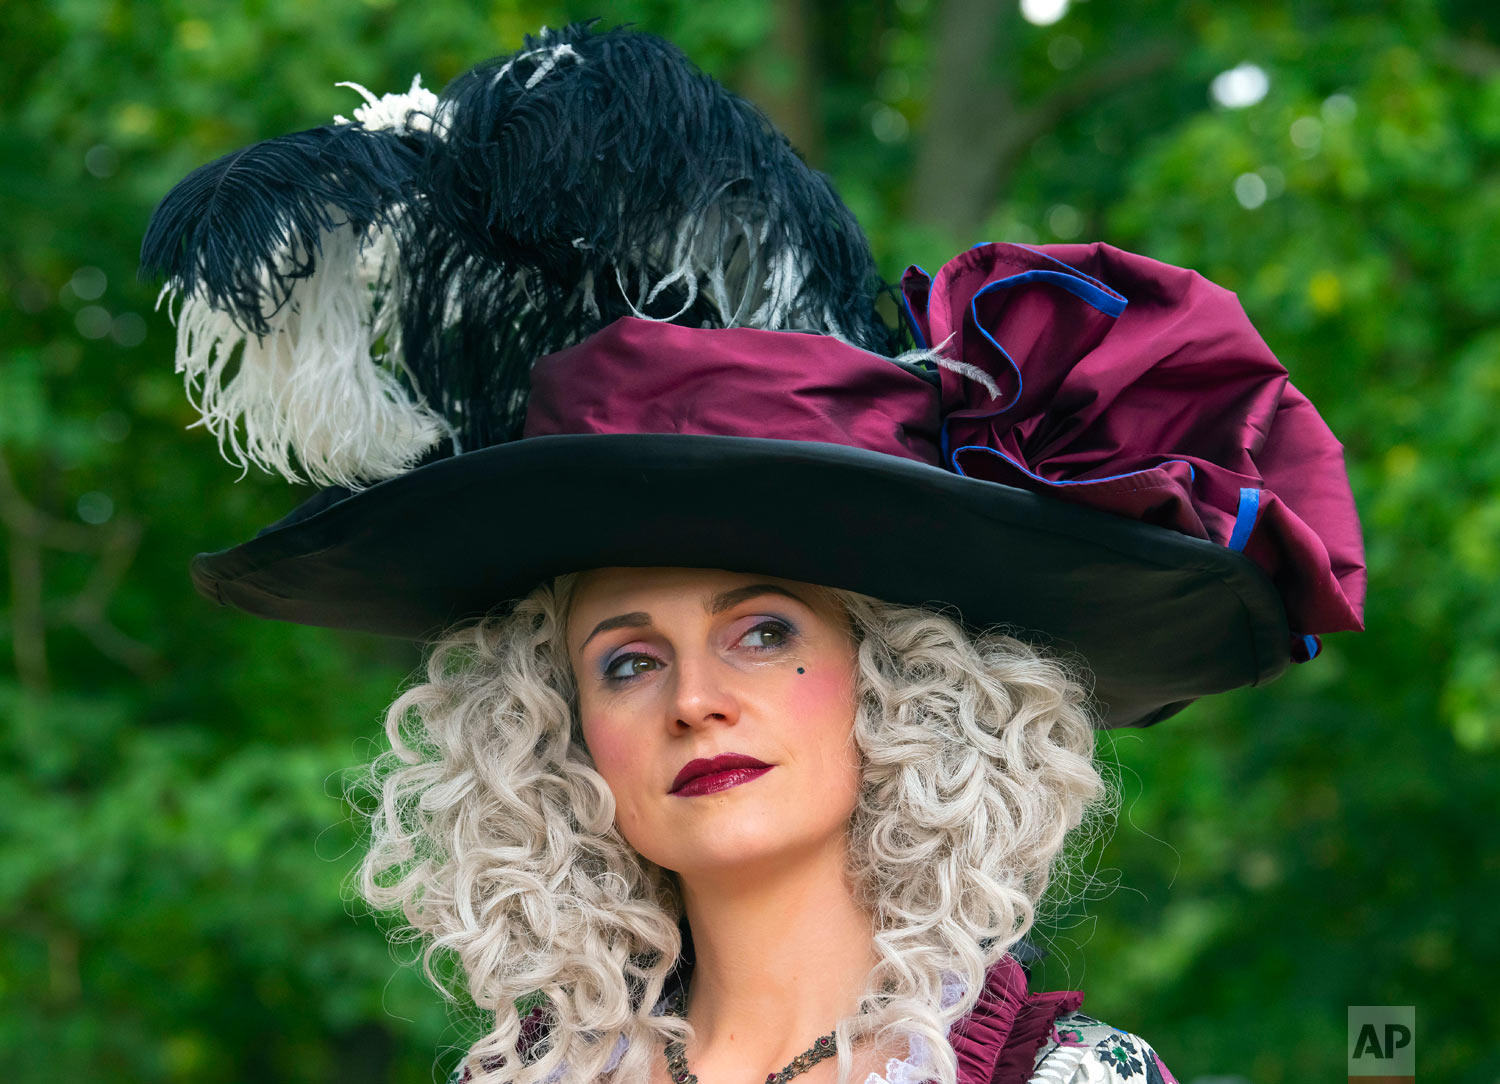 A woman dressed in traditional clothing takes part in the picnic near the Friedenstein Castle, during the Baroque Festival in Gotha, Germany, Saturday, Aug. 25, 2018. For the past fifteen years, the city transforms into an 18th Century city for the annual festival. (AP Photo/Jens Meyer)